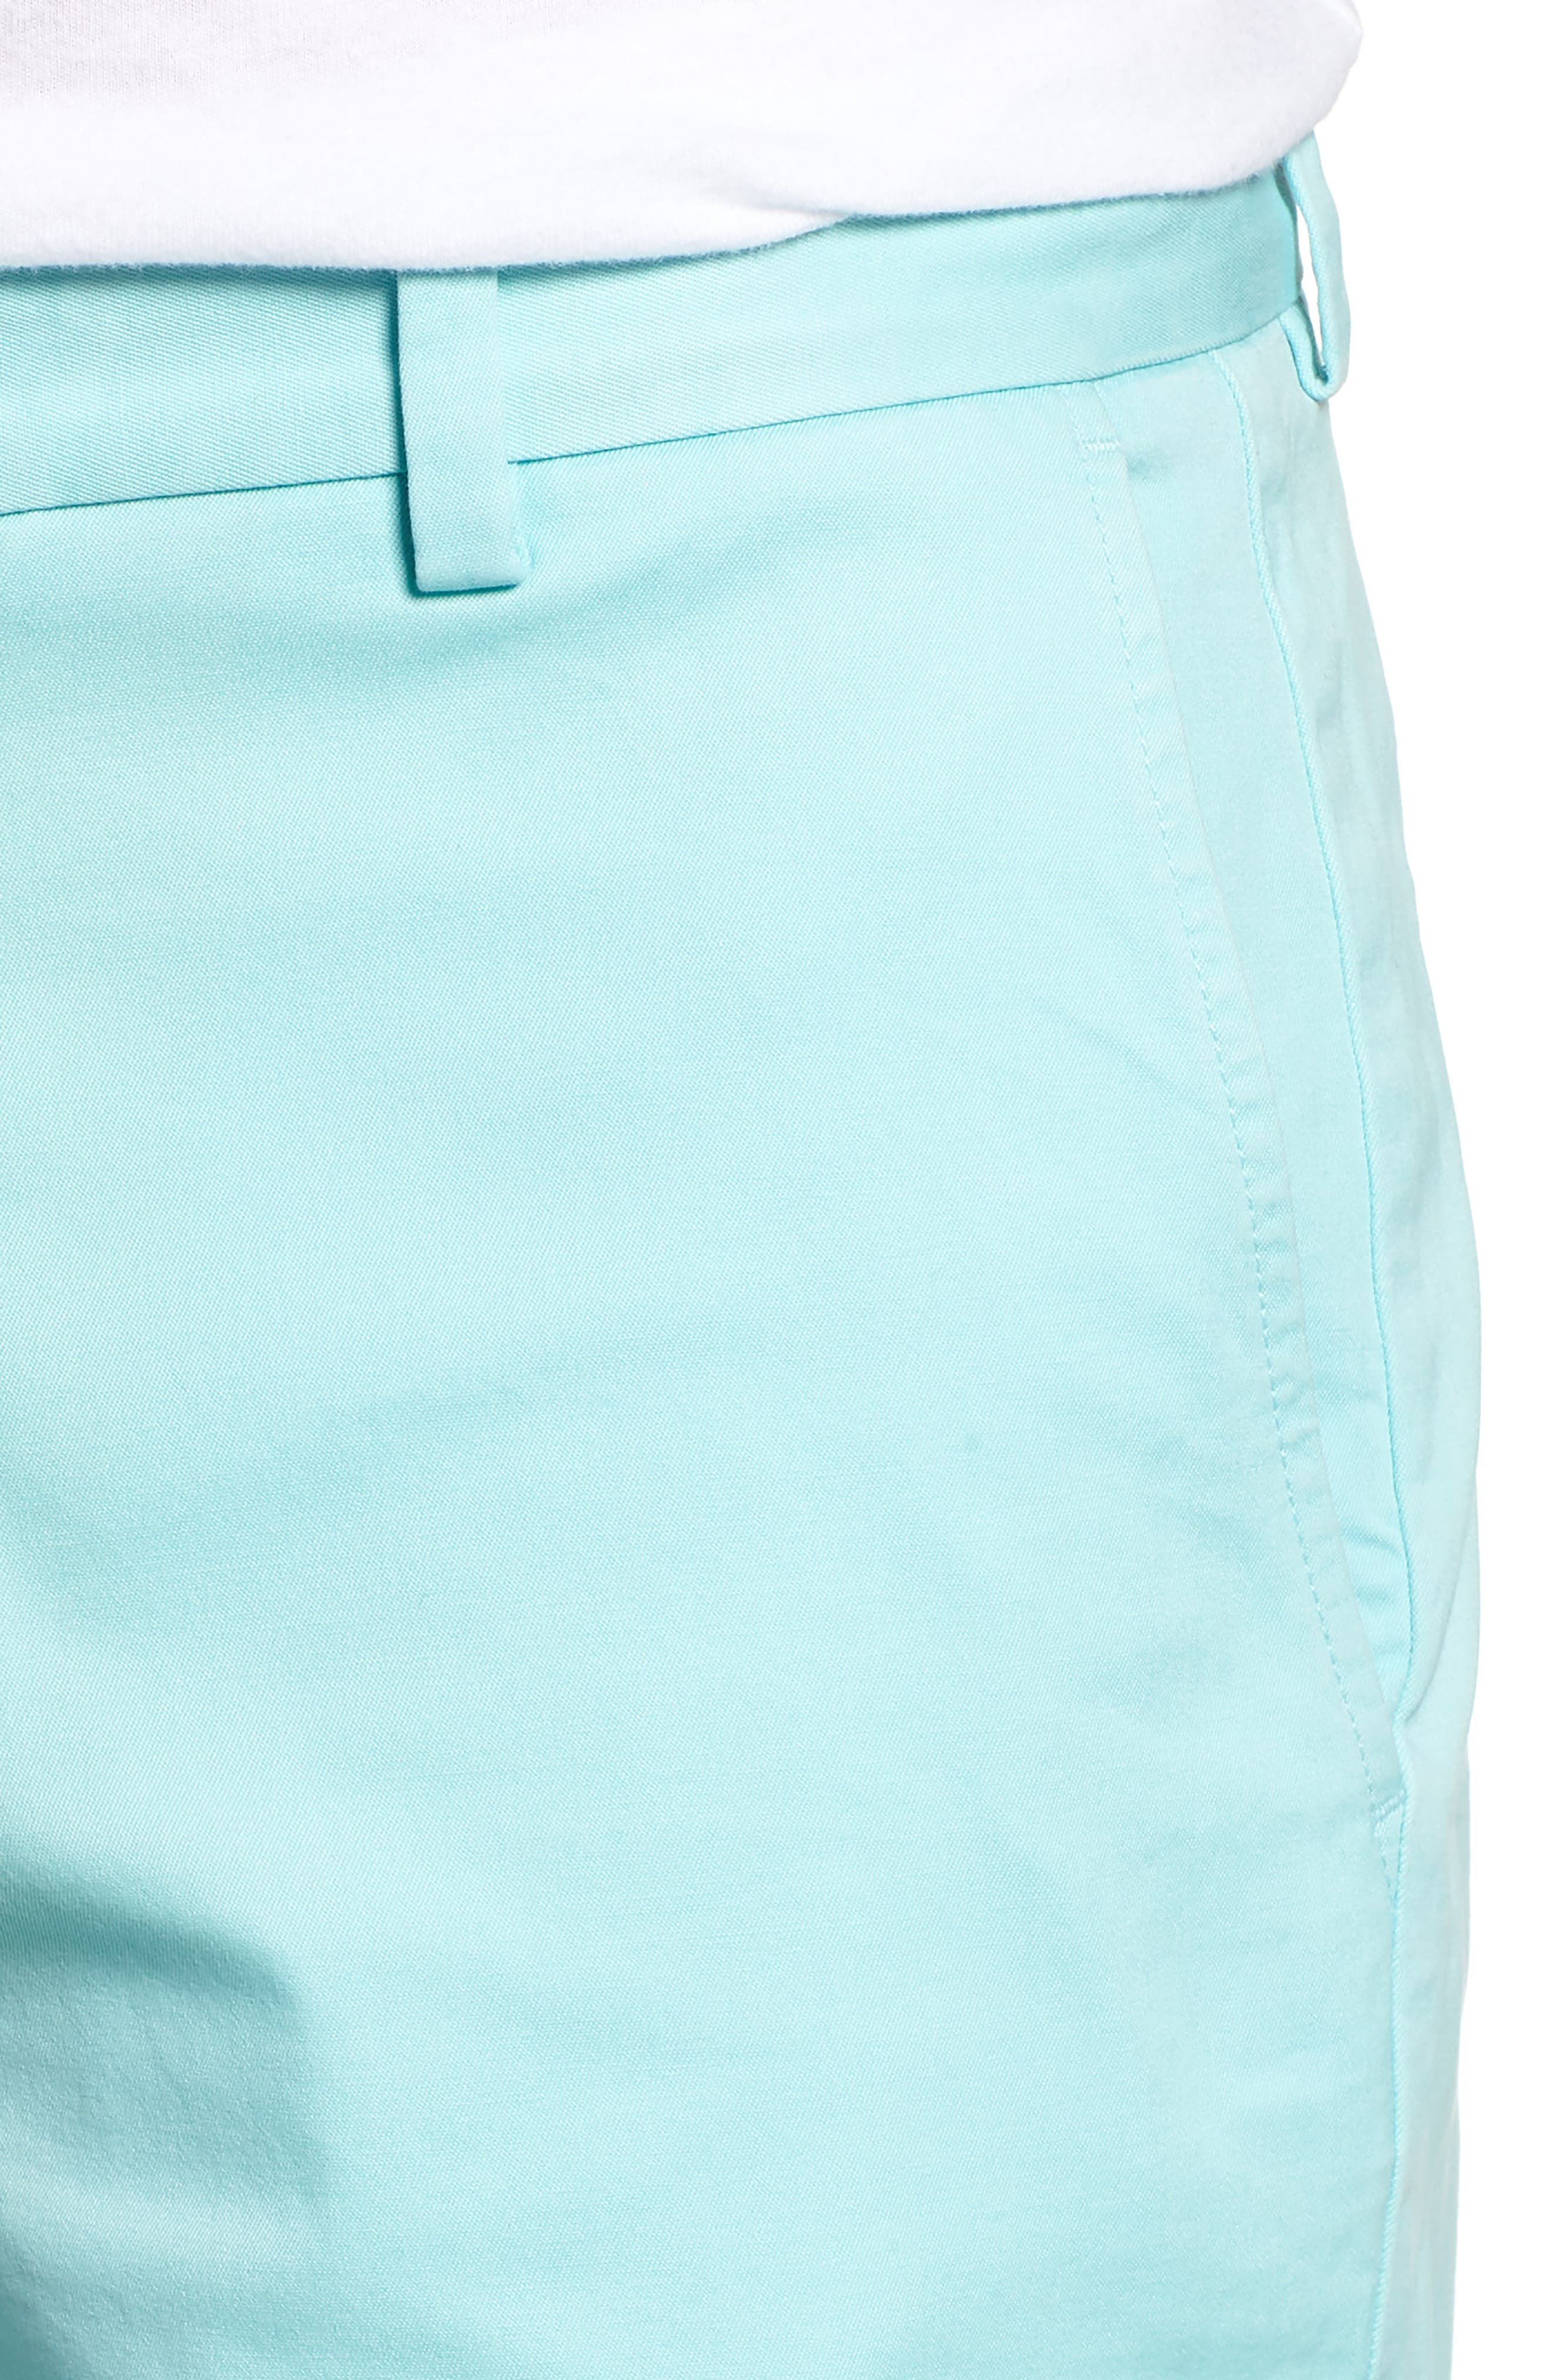 9 Inch Stretch Breaker Shorts,                             Alternate thumbnail 4, color,                             437